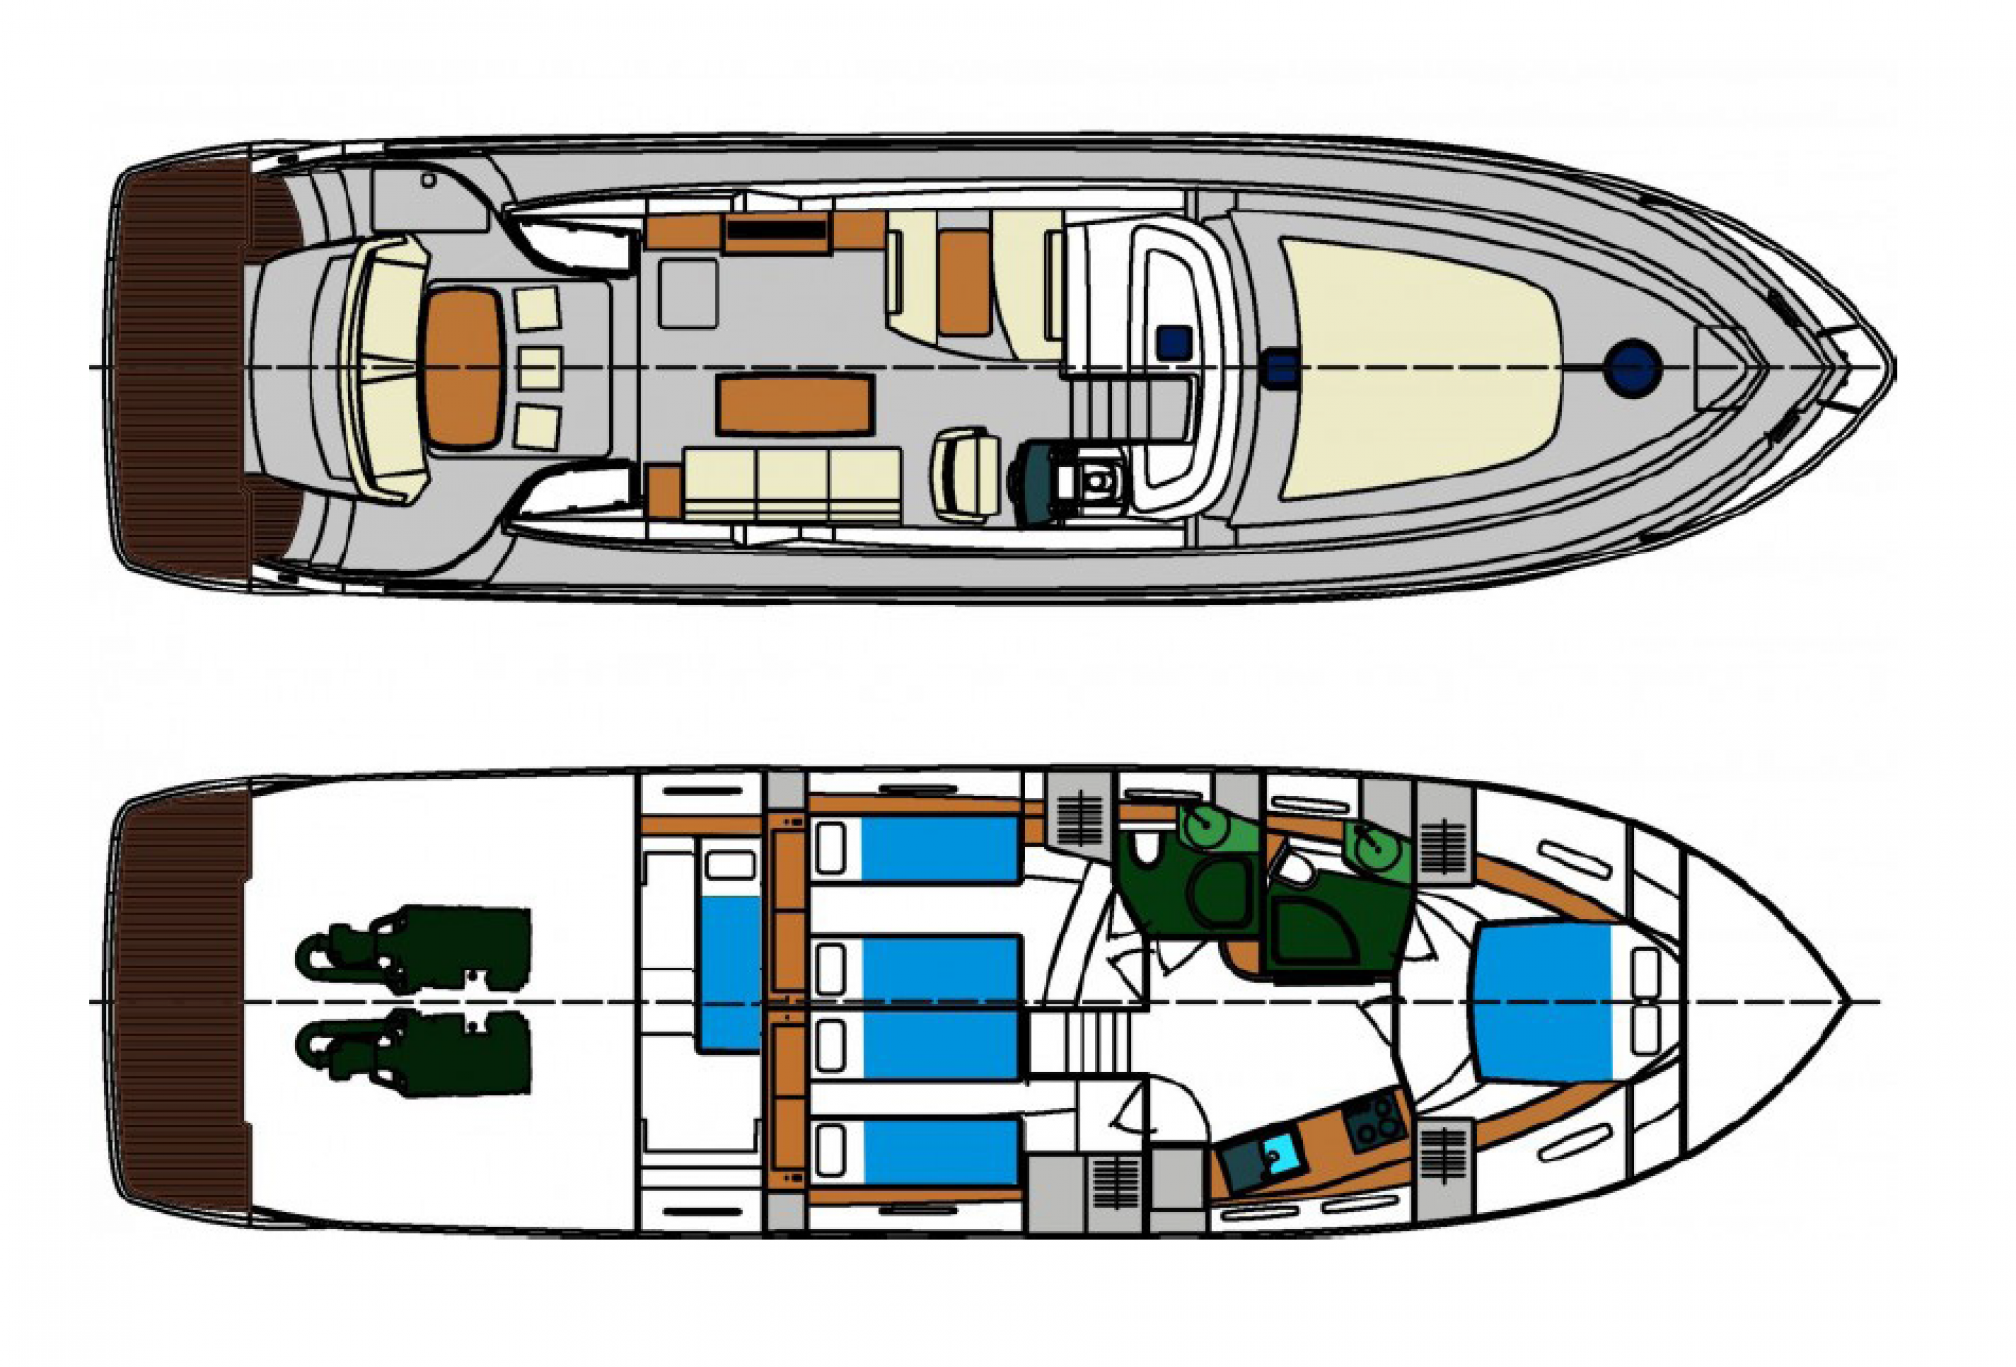 Rental yacht Prinz 58 layout